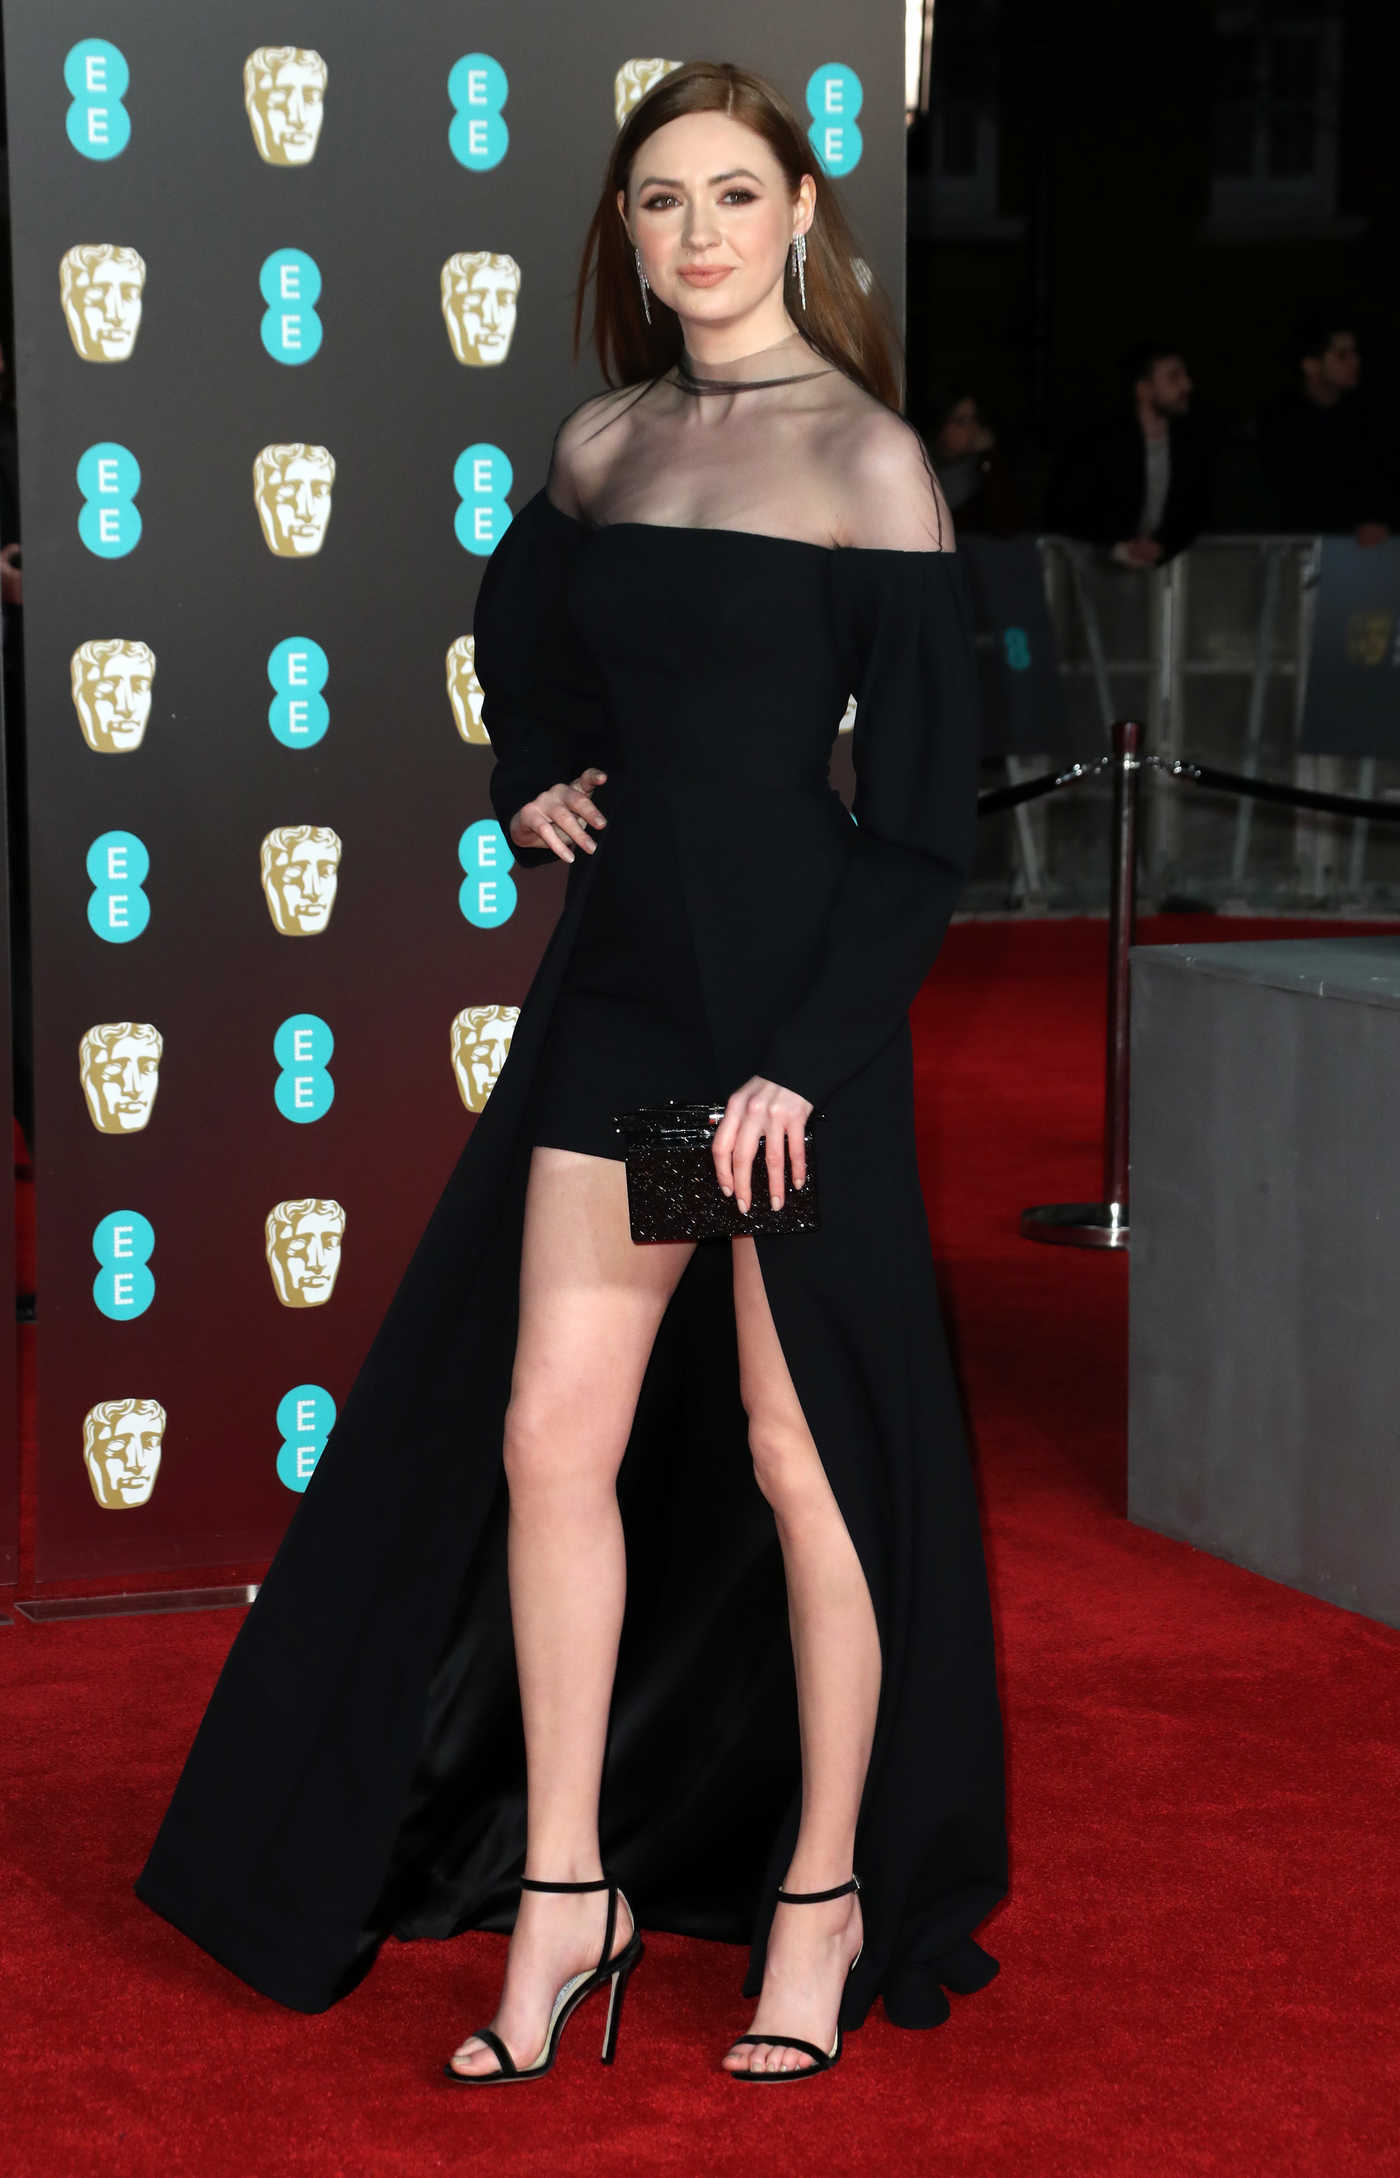 Karen Gillan at the 71st British Academy Film Awards at Royal Albert Hall in London 02/18/2018